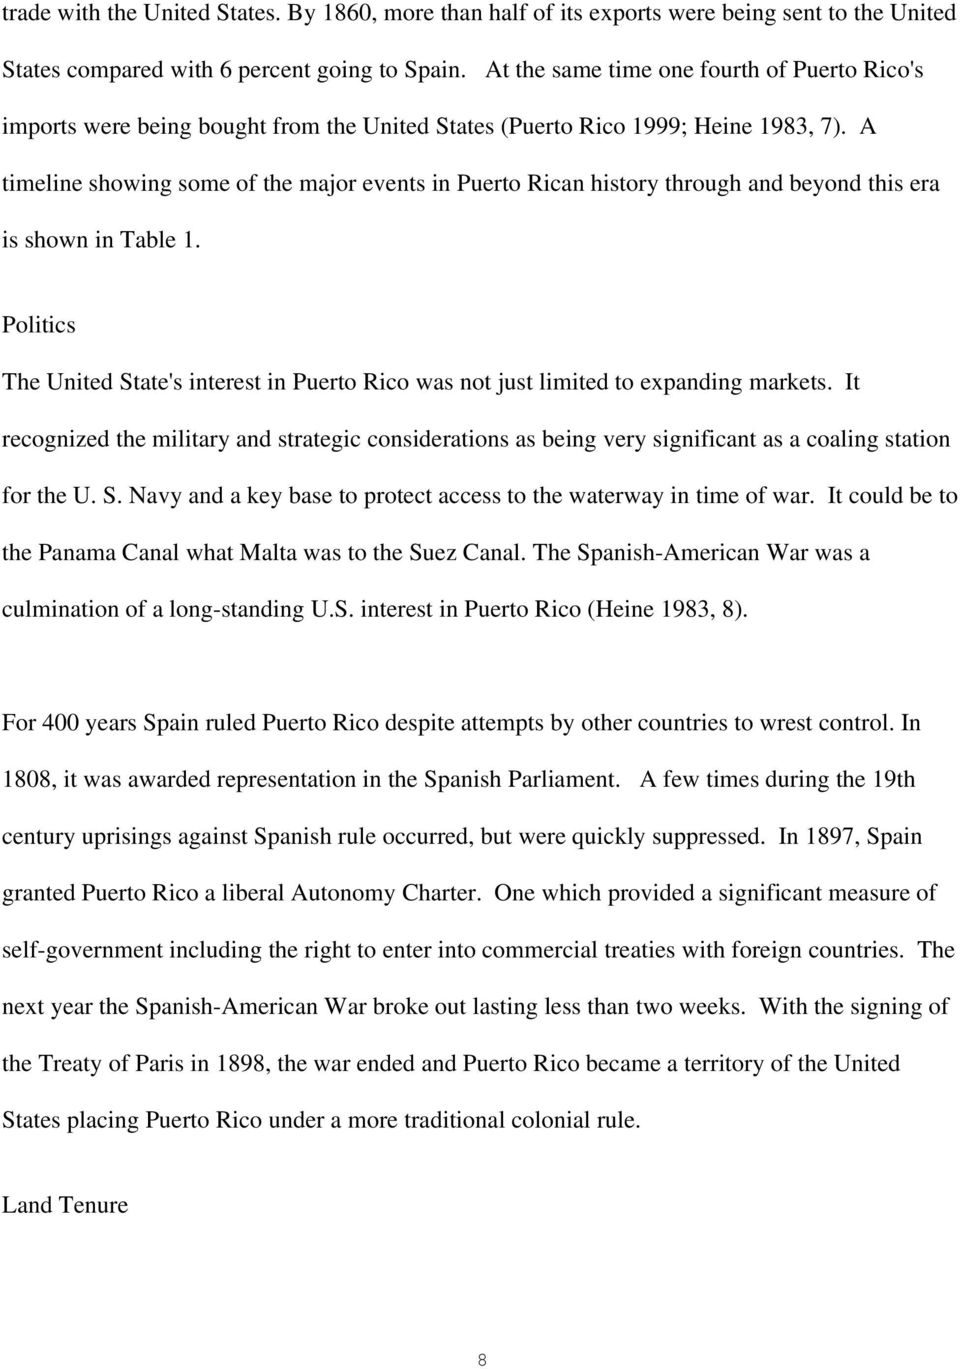 A timeline showing some of the major events in Puerto Rican history through and beyond this era is shown in Table 1.